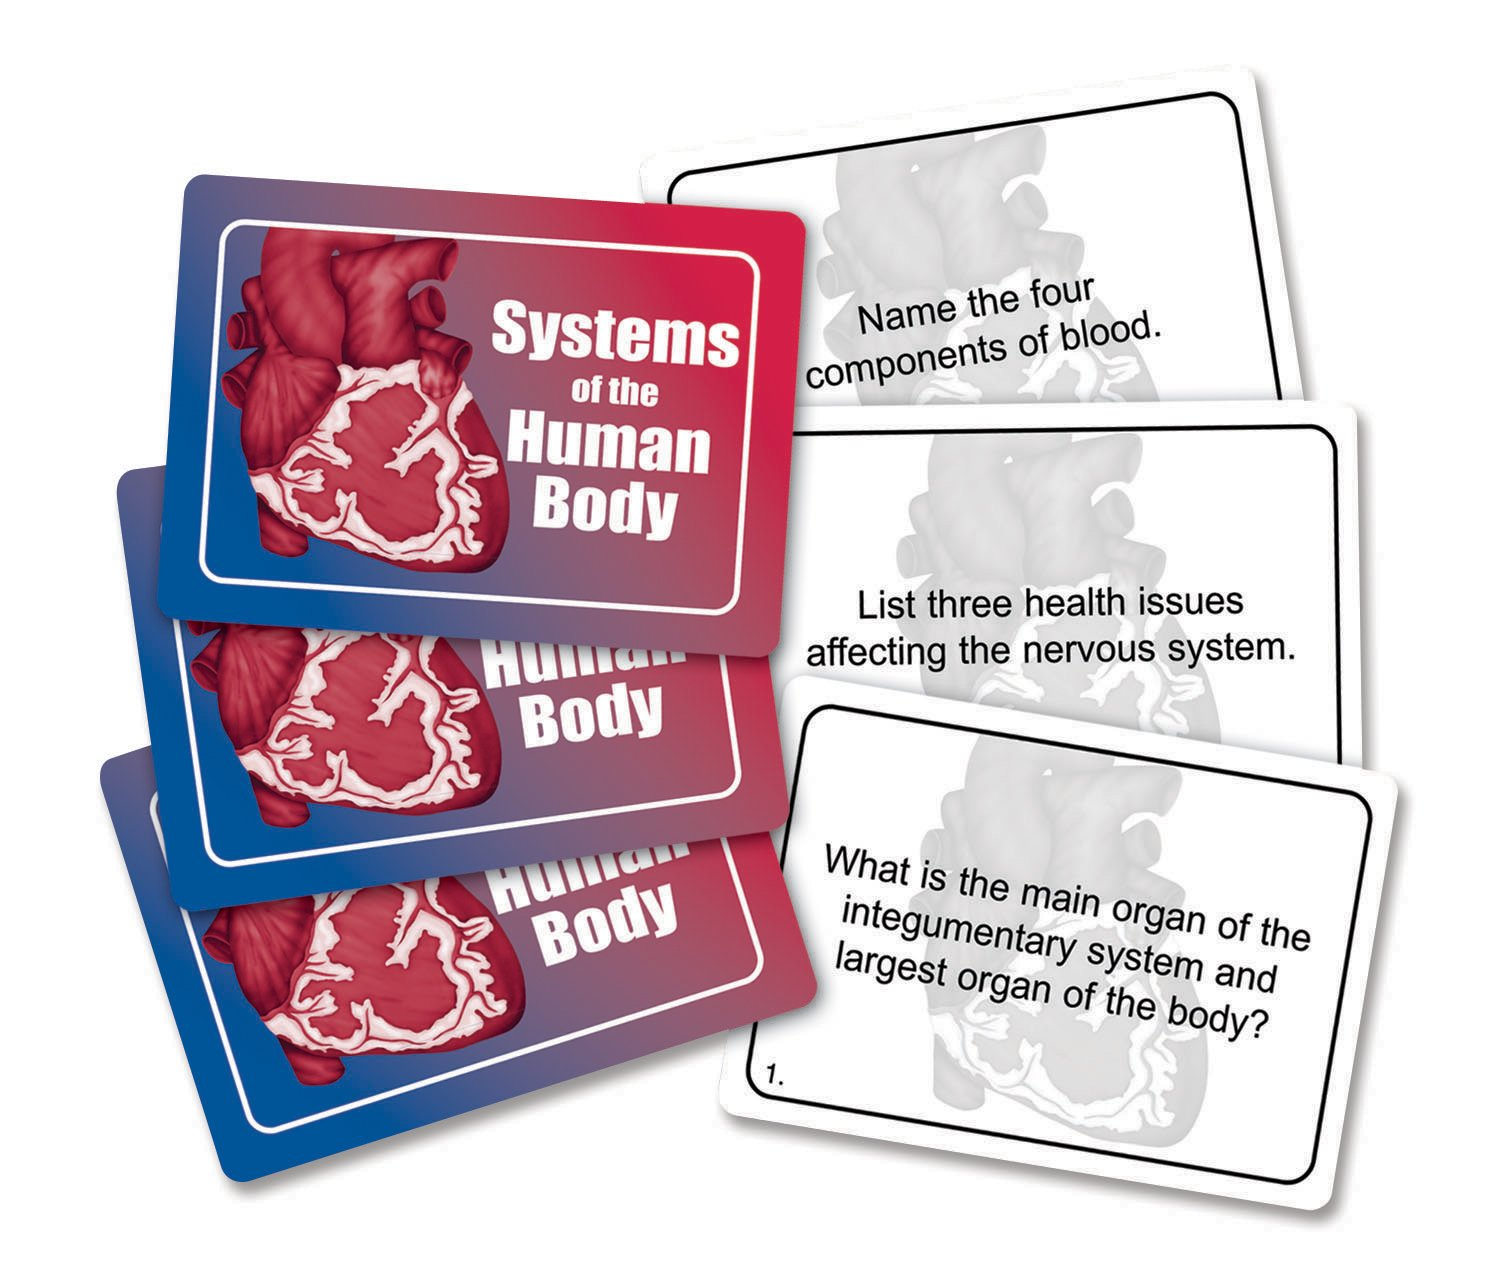 Human Body Systems Games for Kids